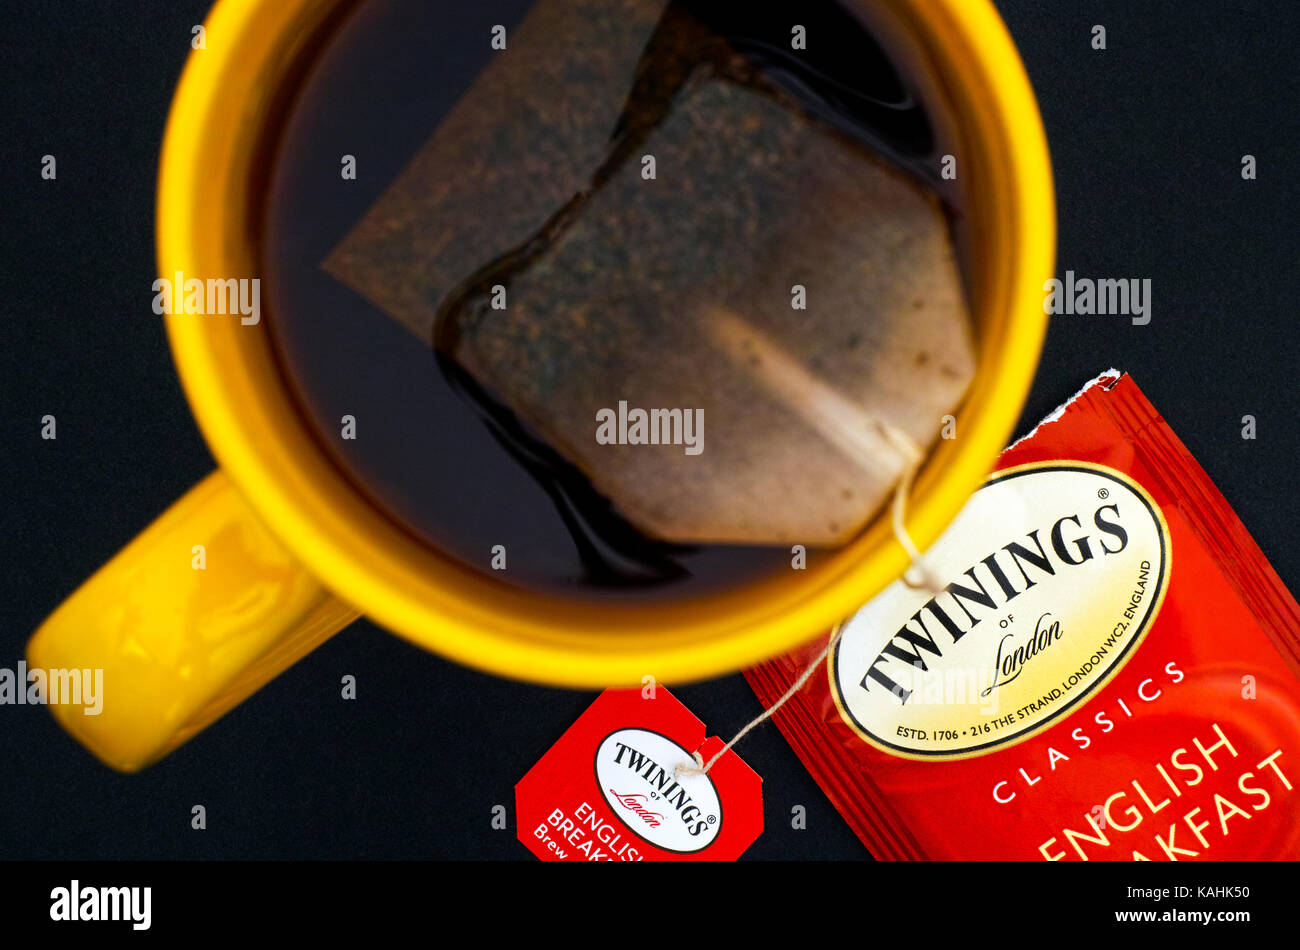 Tambov, Russian Federation - August 28, 2017 Cup of Twinings English Breakfast tea with teabag on black background. - Stock Image